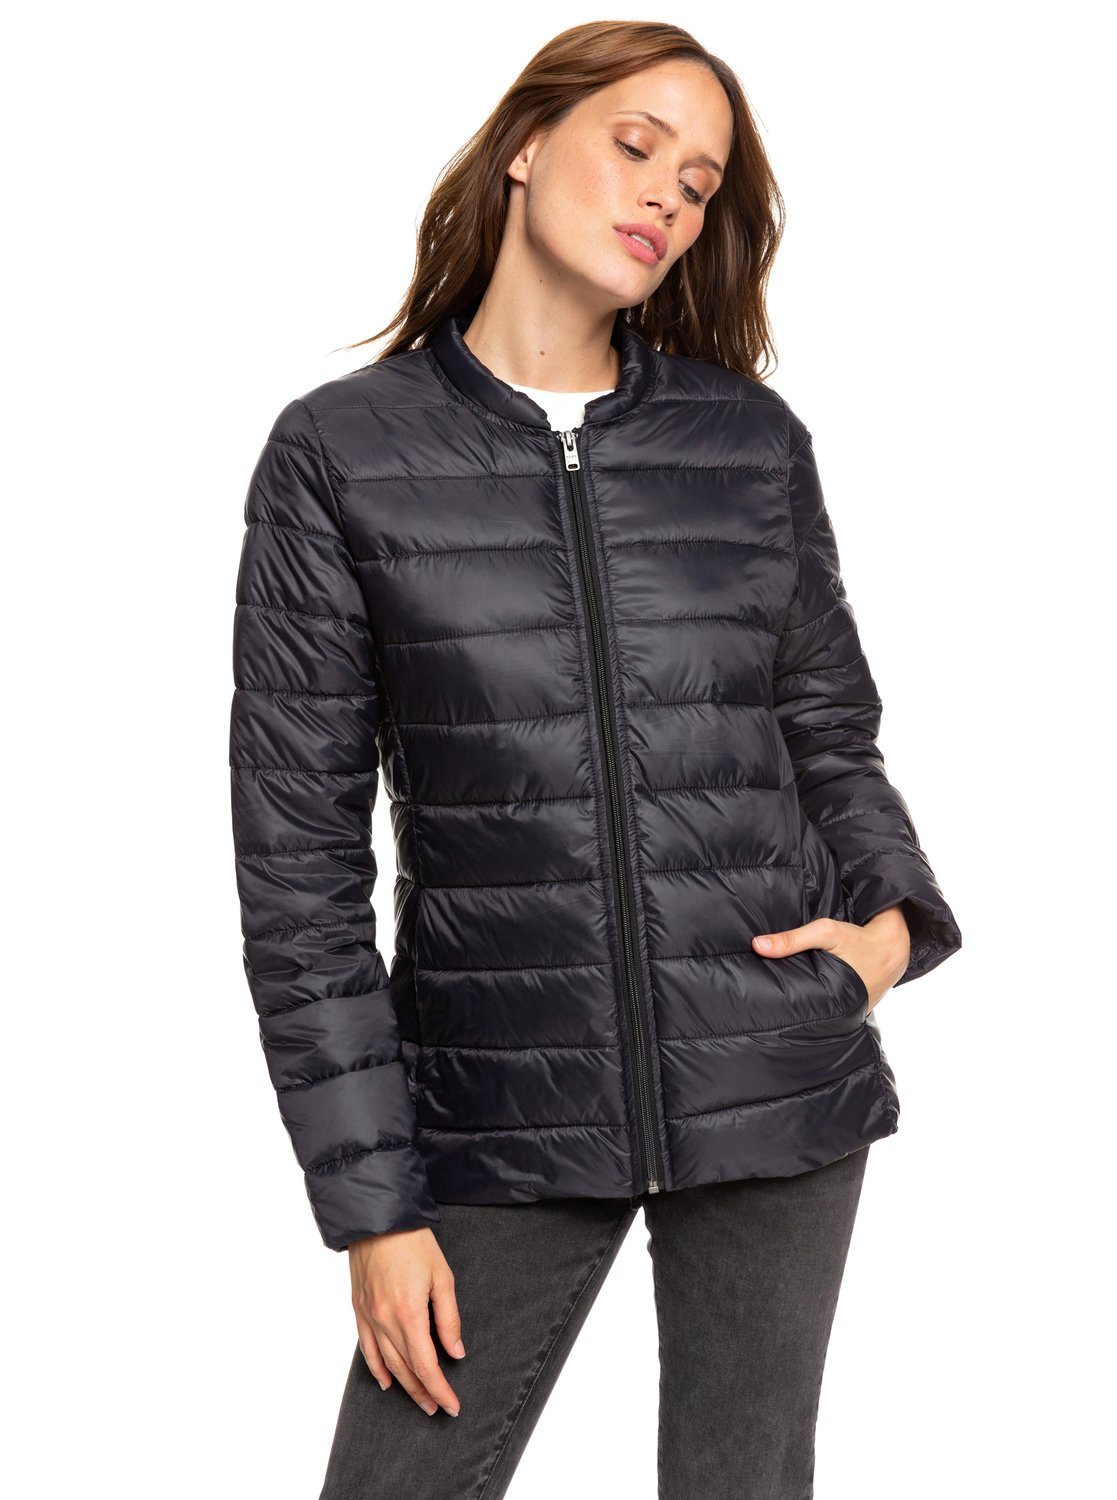 737dee699abbf Roxy™ Endless Dreaming - Packable Lightweight Puffer Jacket for ...